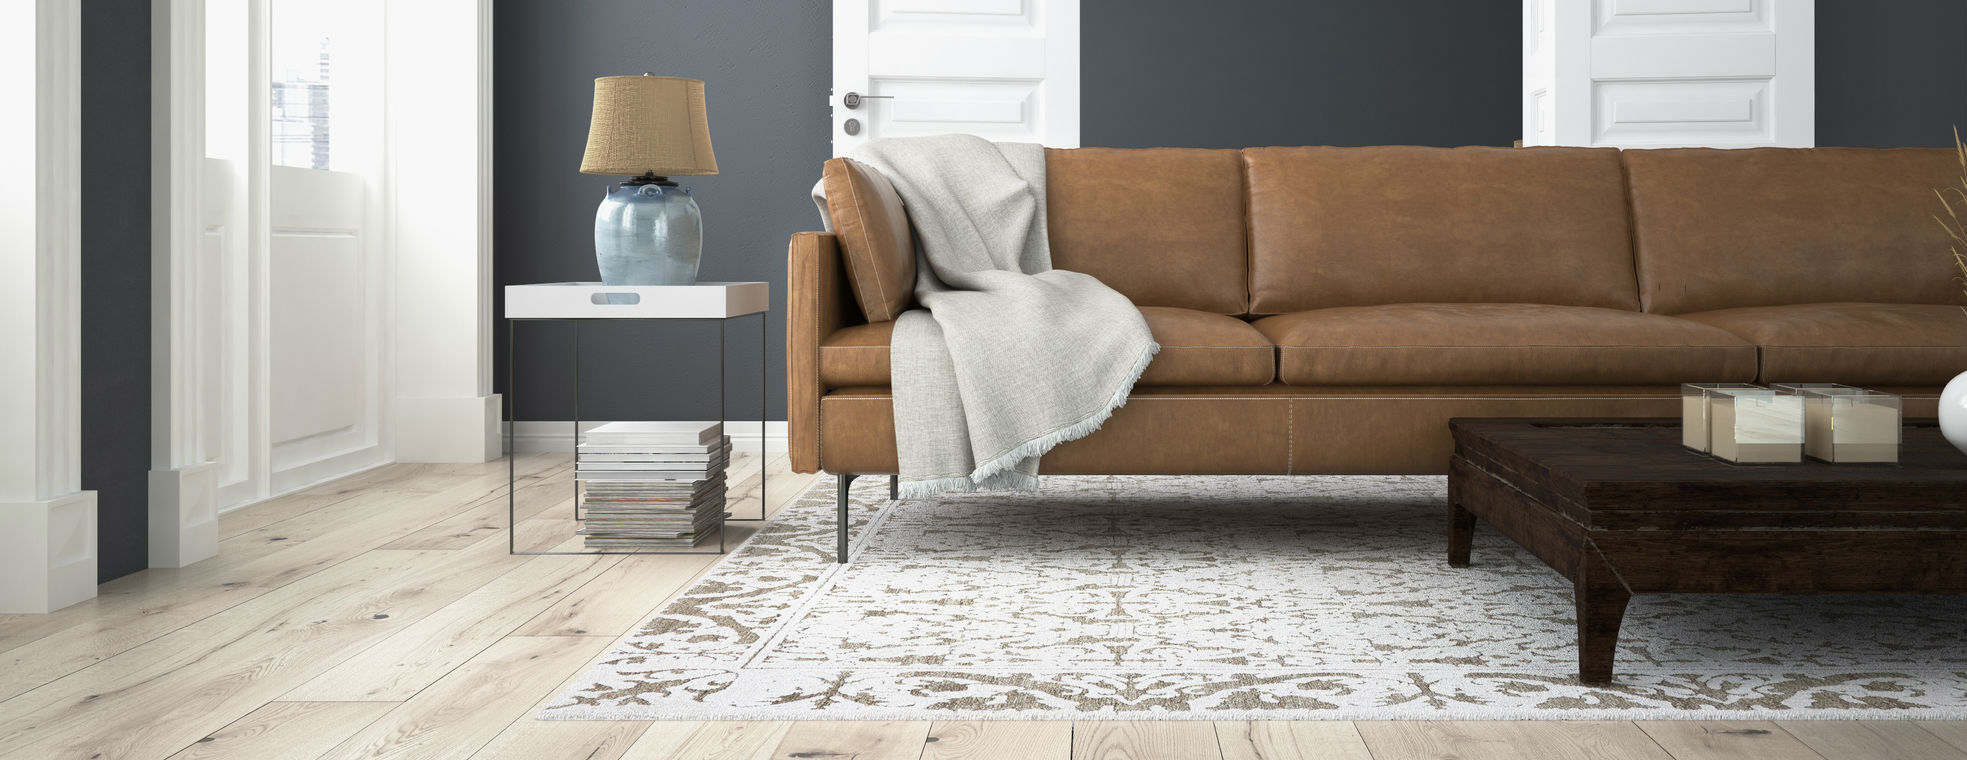 Sofa Cleaning Somerset County Nj